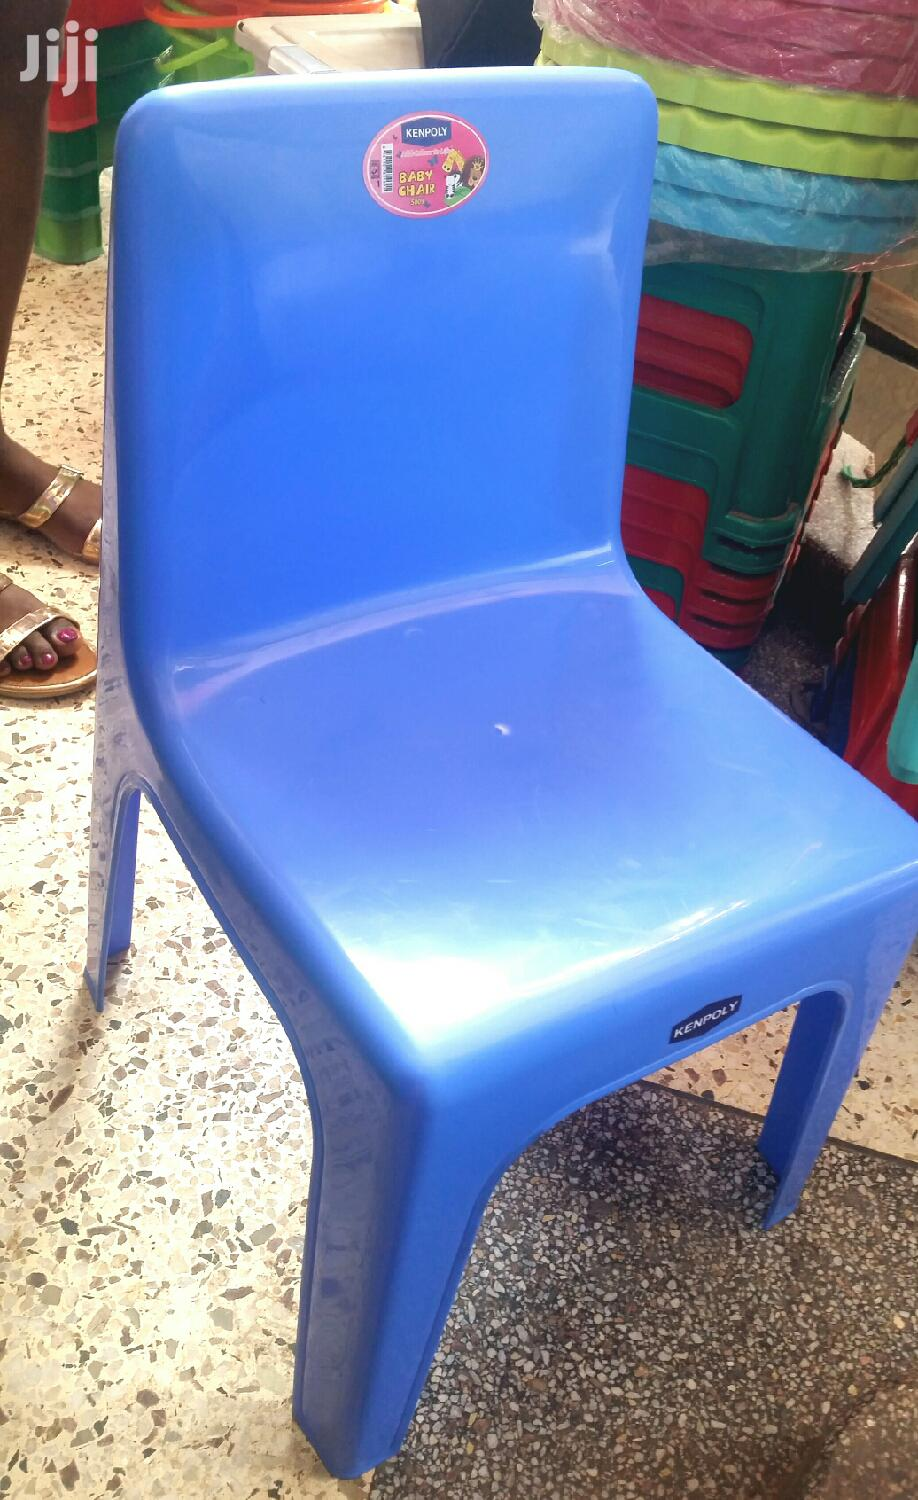 Kids Chairs / Plastic Chairs For Kids | Children's Furniture for sale in Kampala, Central Region, Uganda